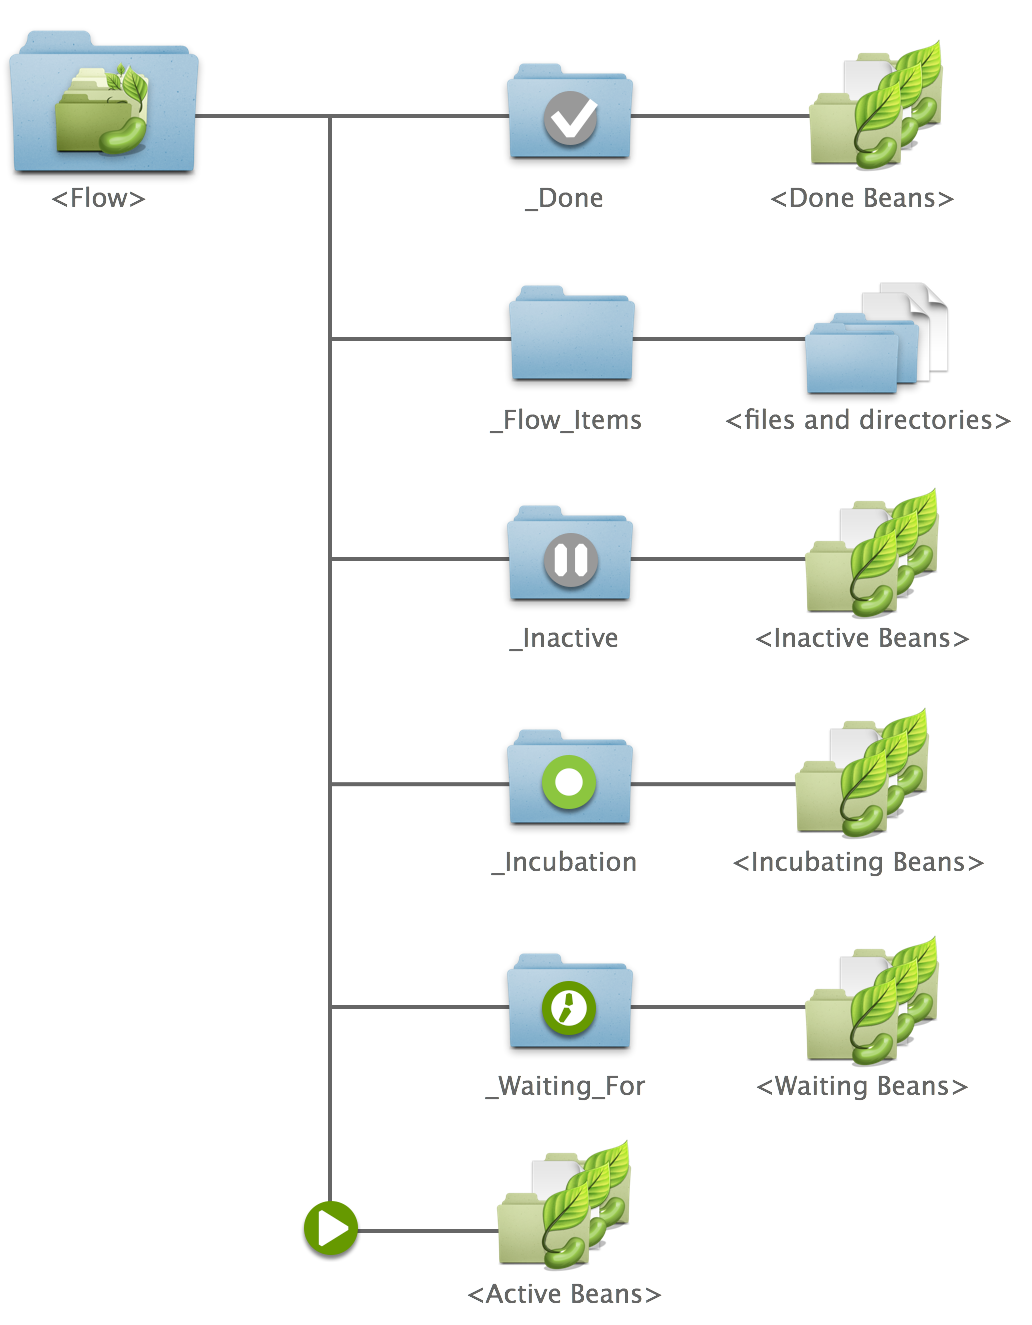 Flow directory structure